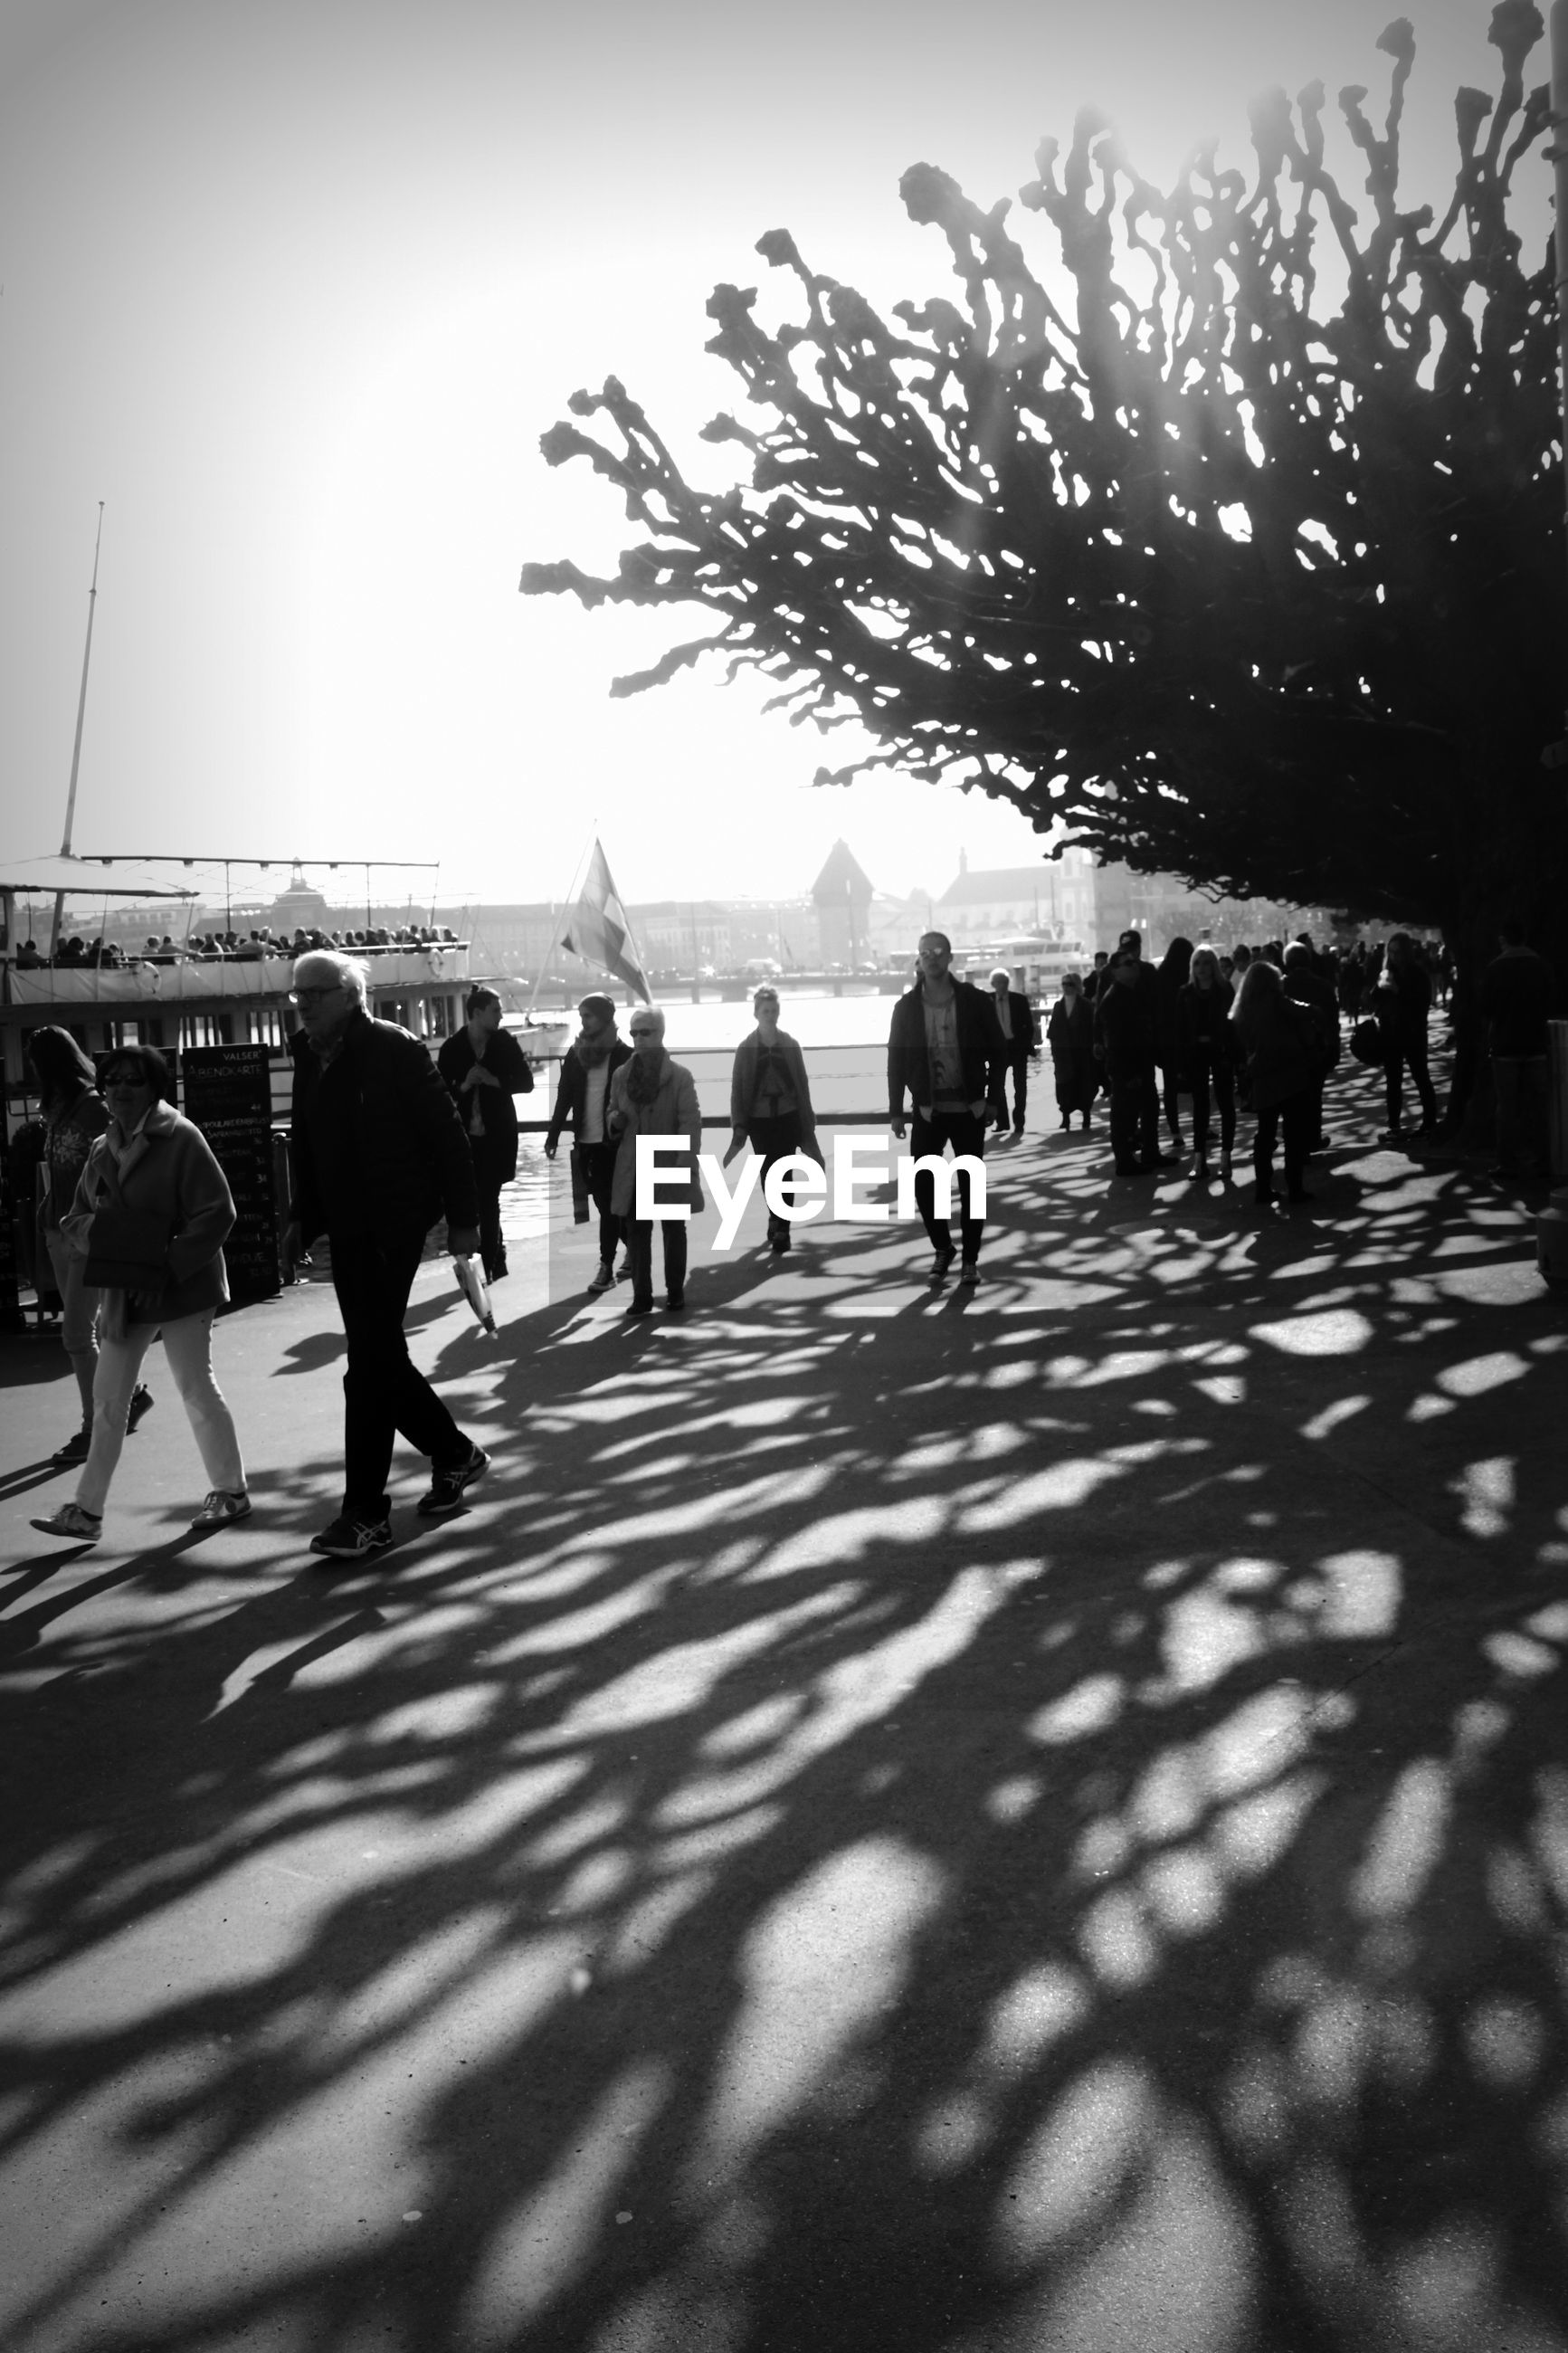 People walking on footpath during sunny day